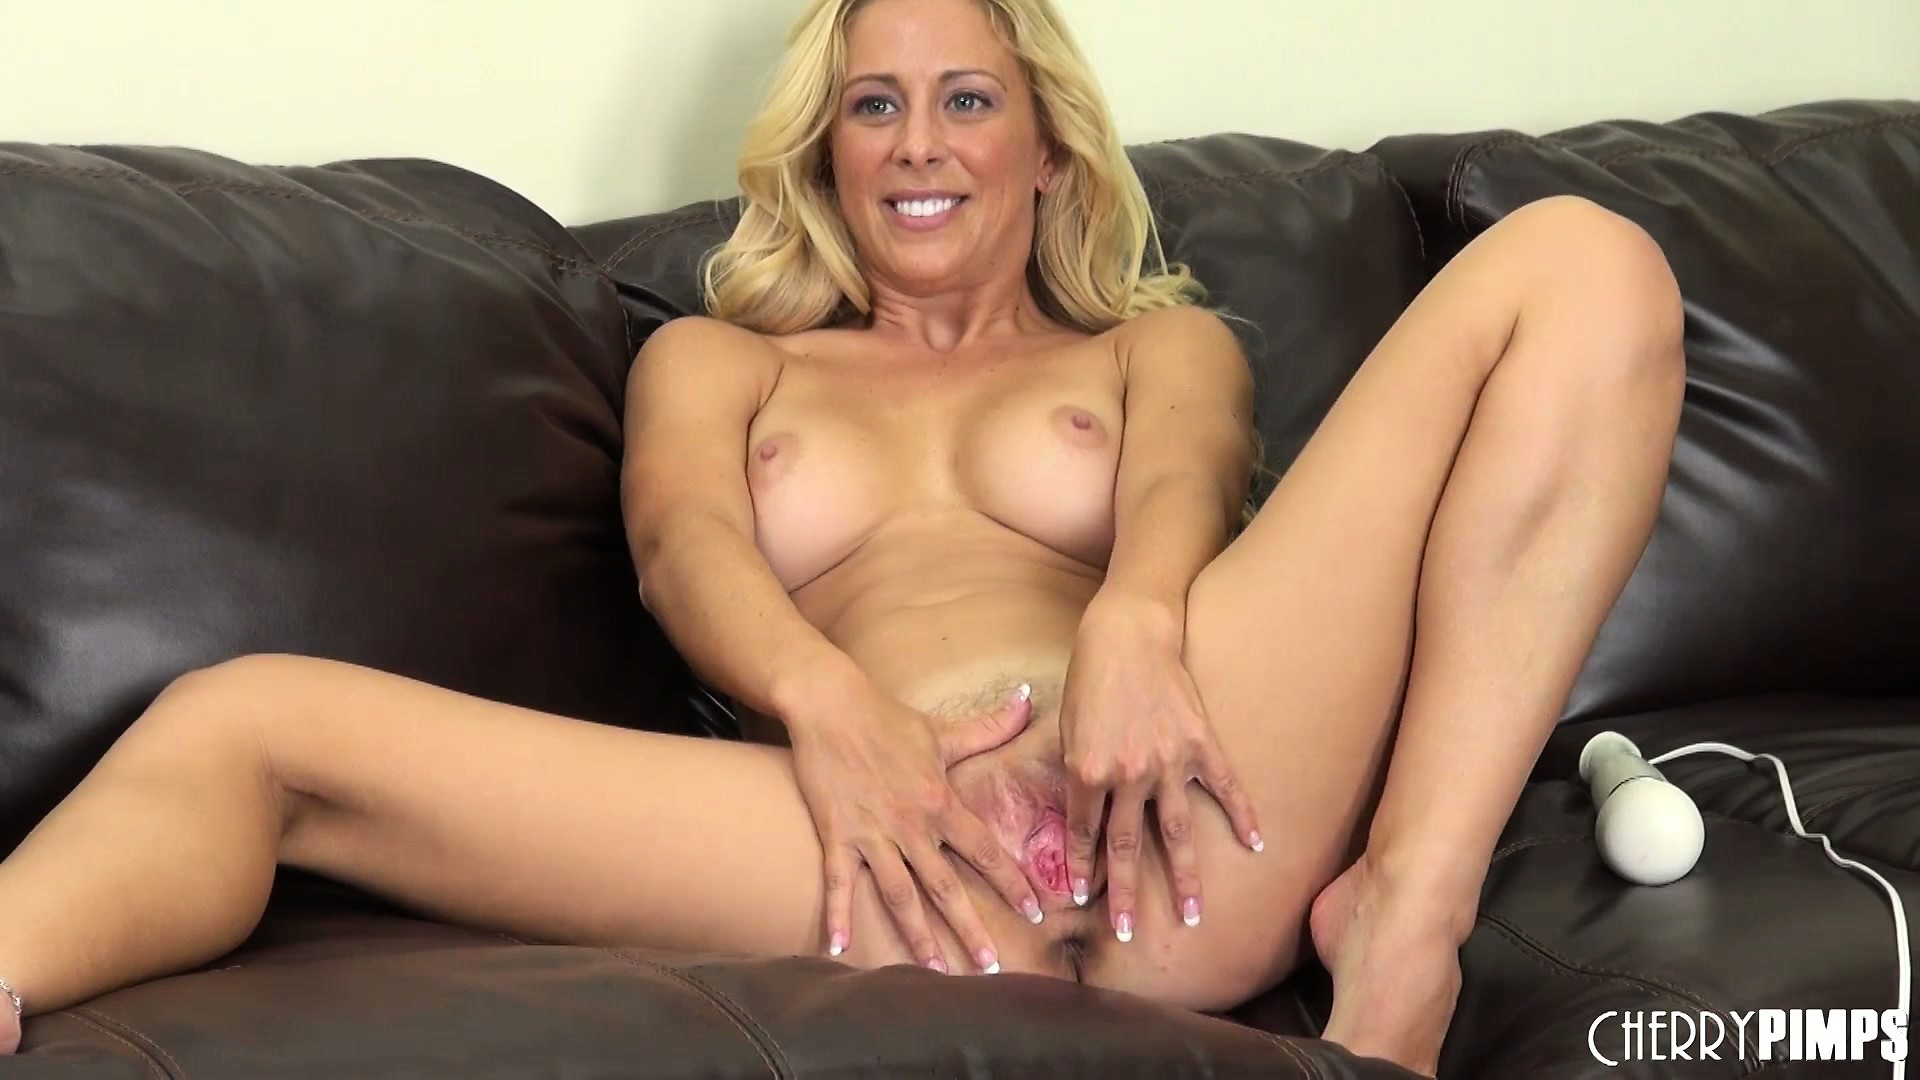 Porn Tube of Cherie Deville Vibrates Her Clit And Spreads Her Lips And Fingers